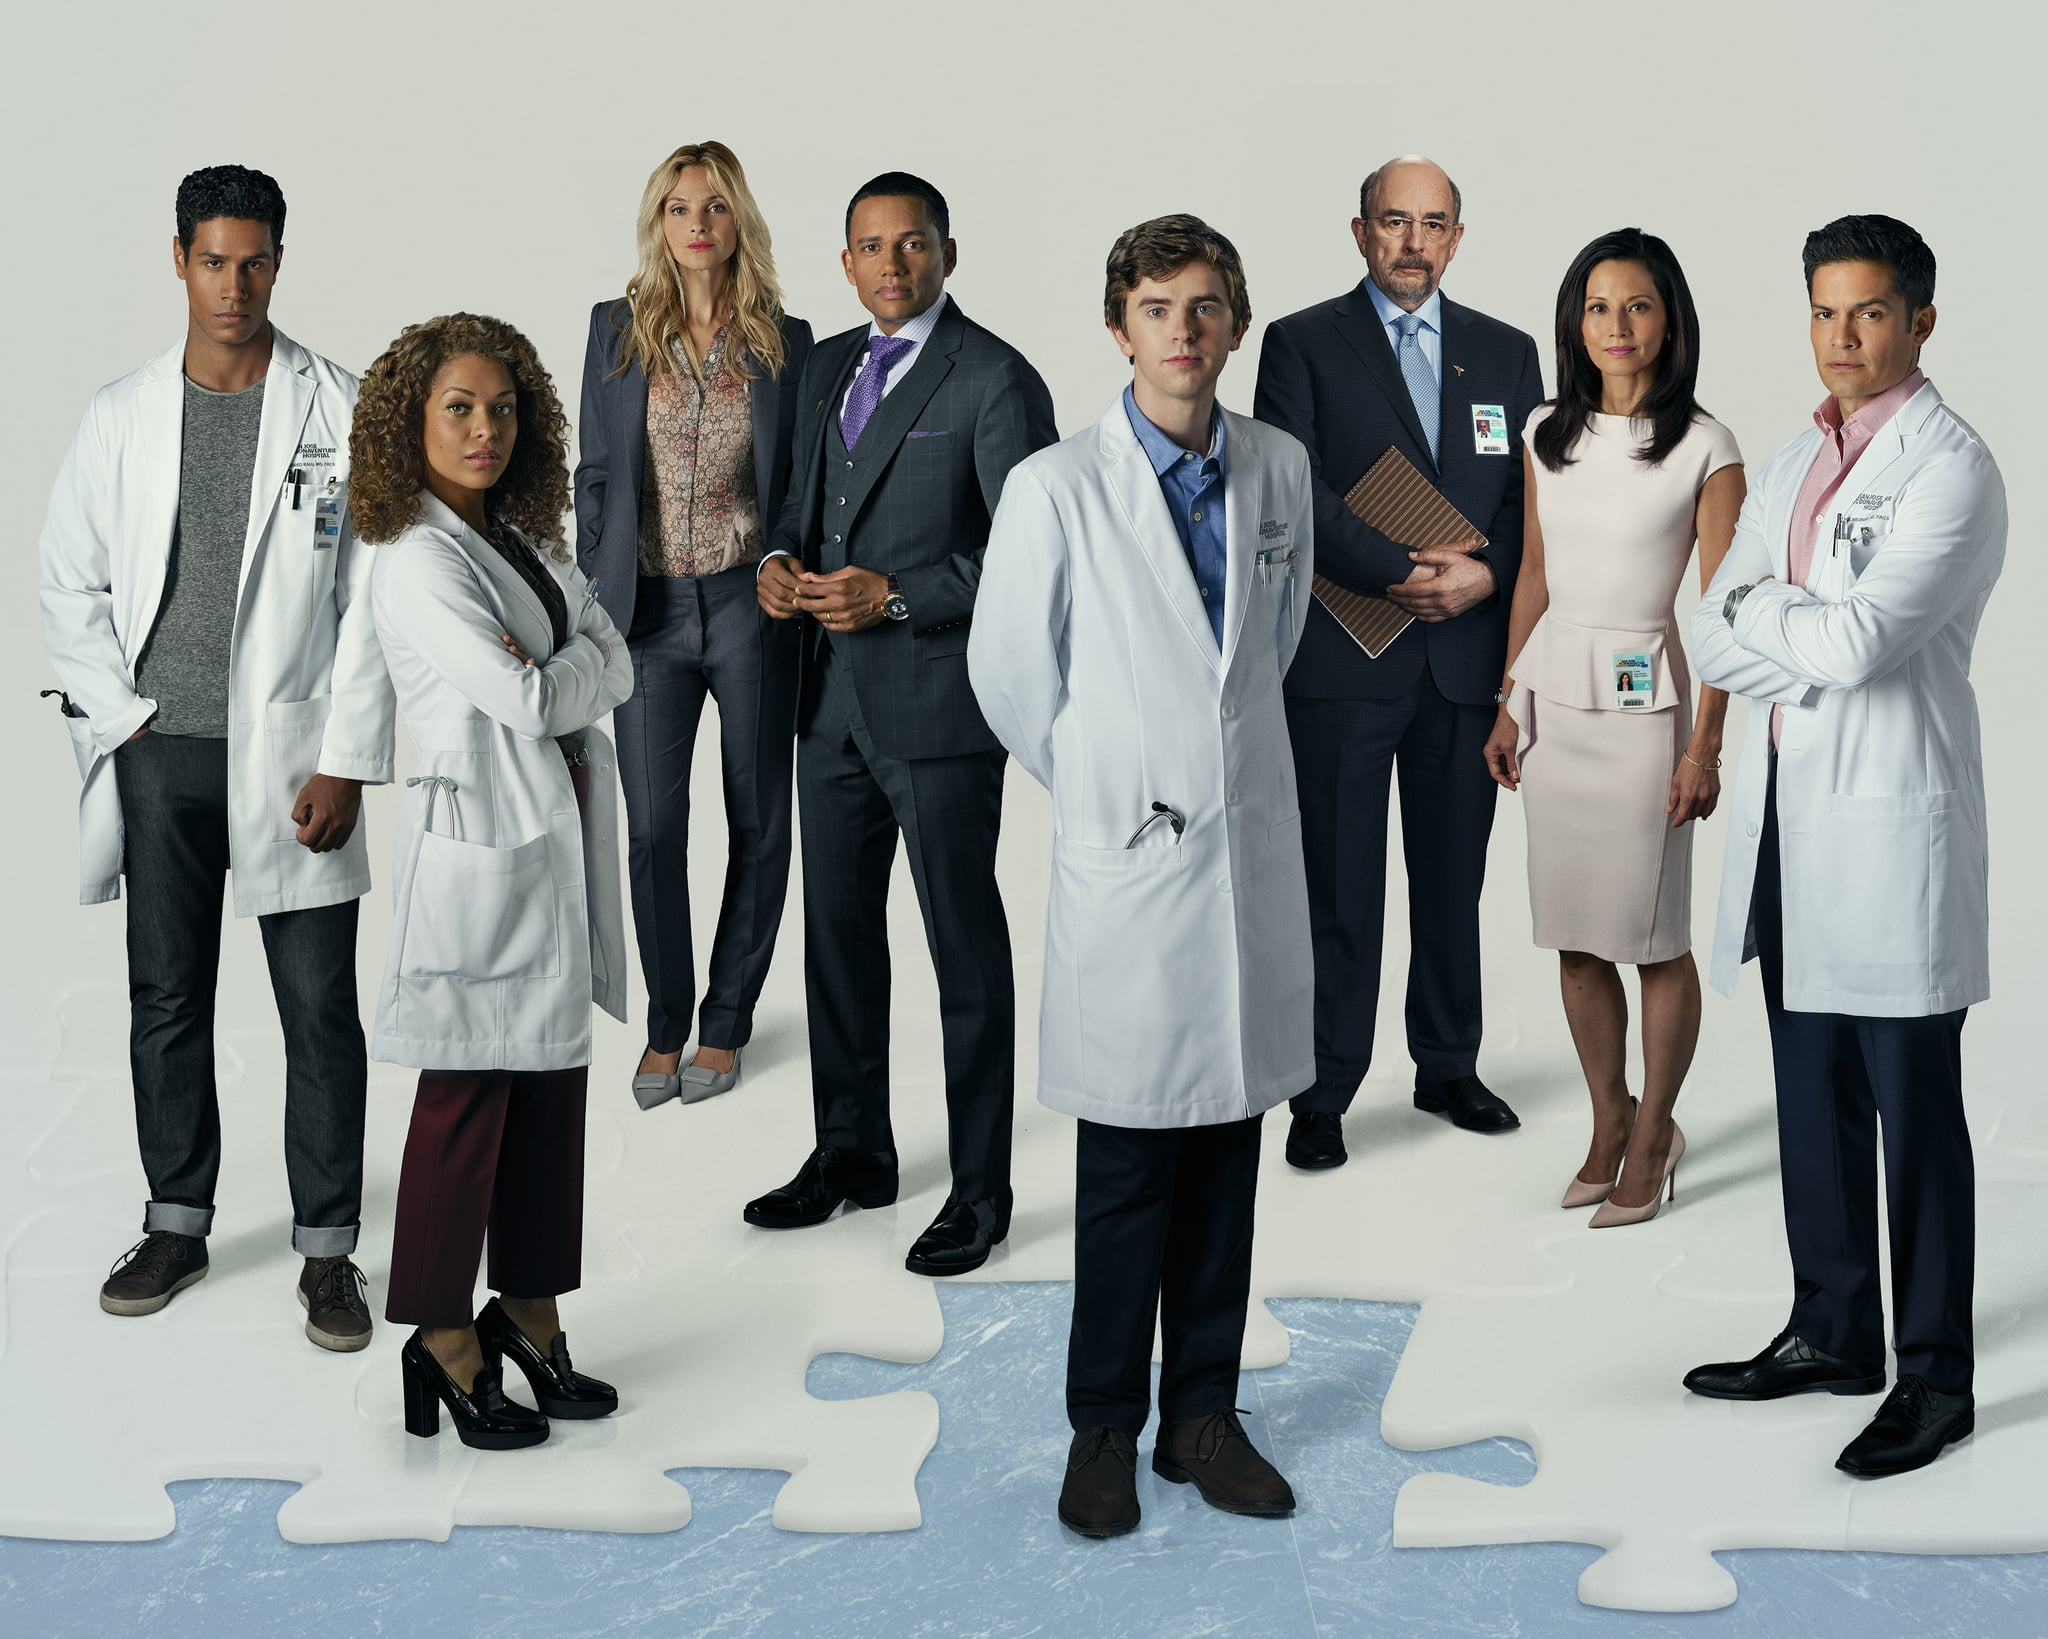 THE GOOD DOCTOR - ABC's